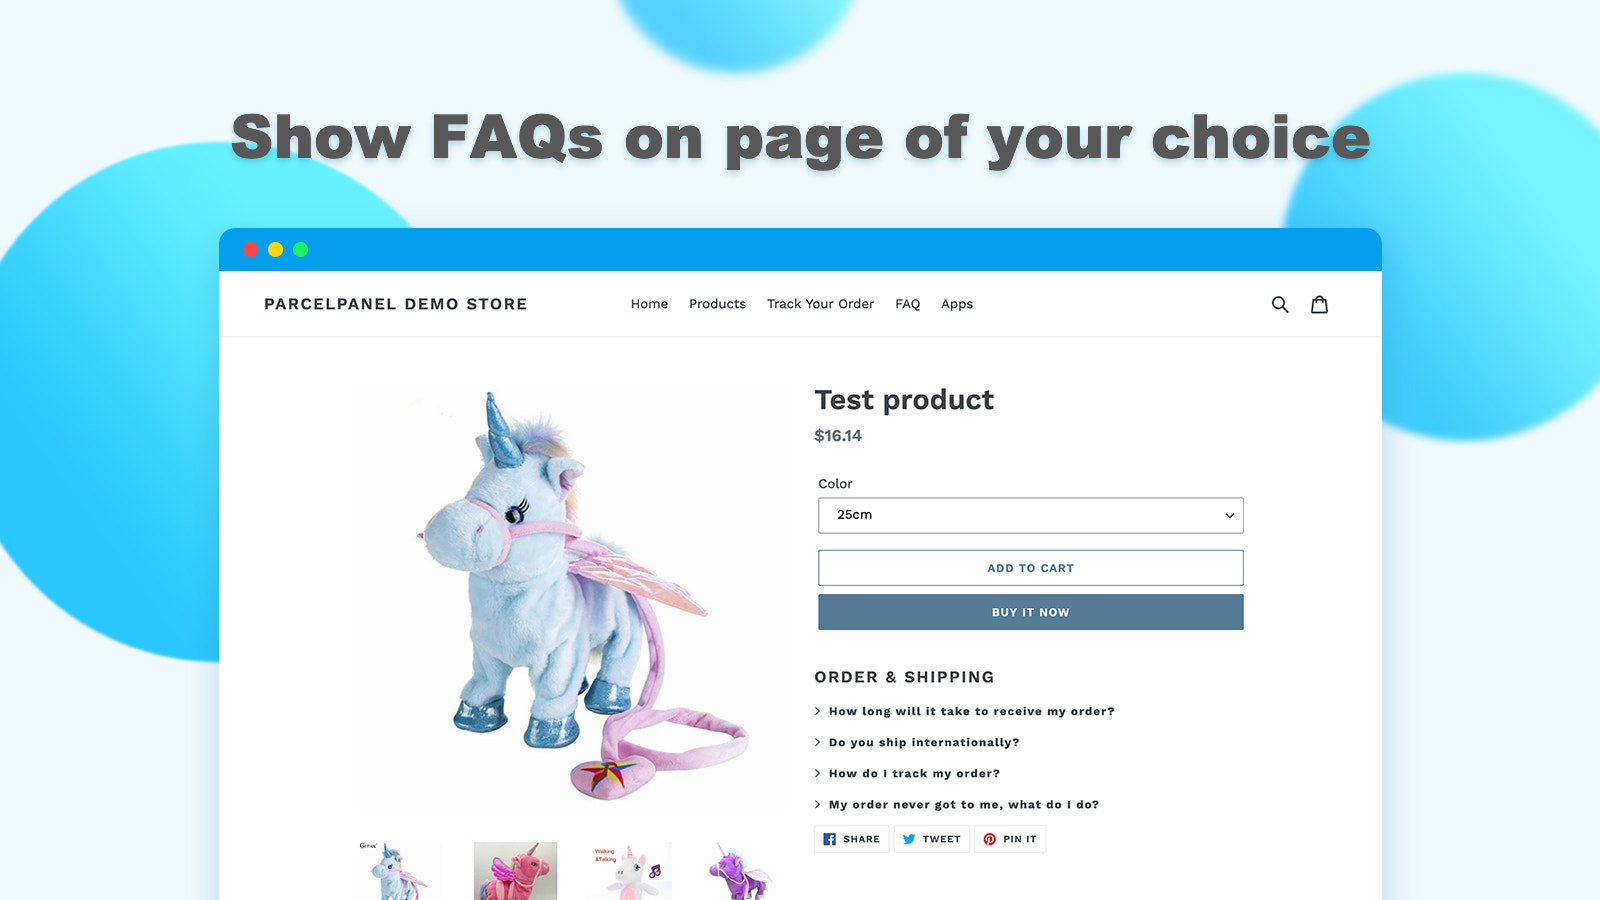 Show FAQs on page of your choice